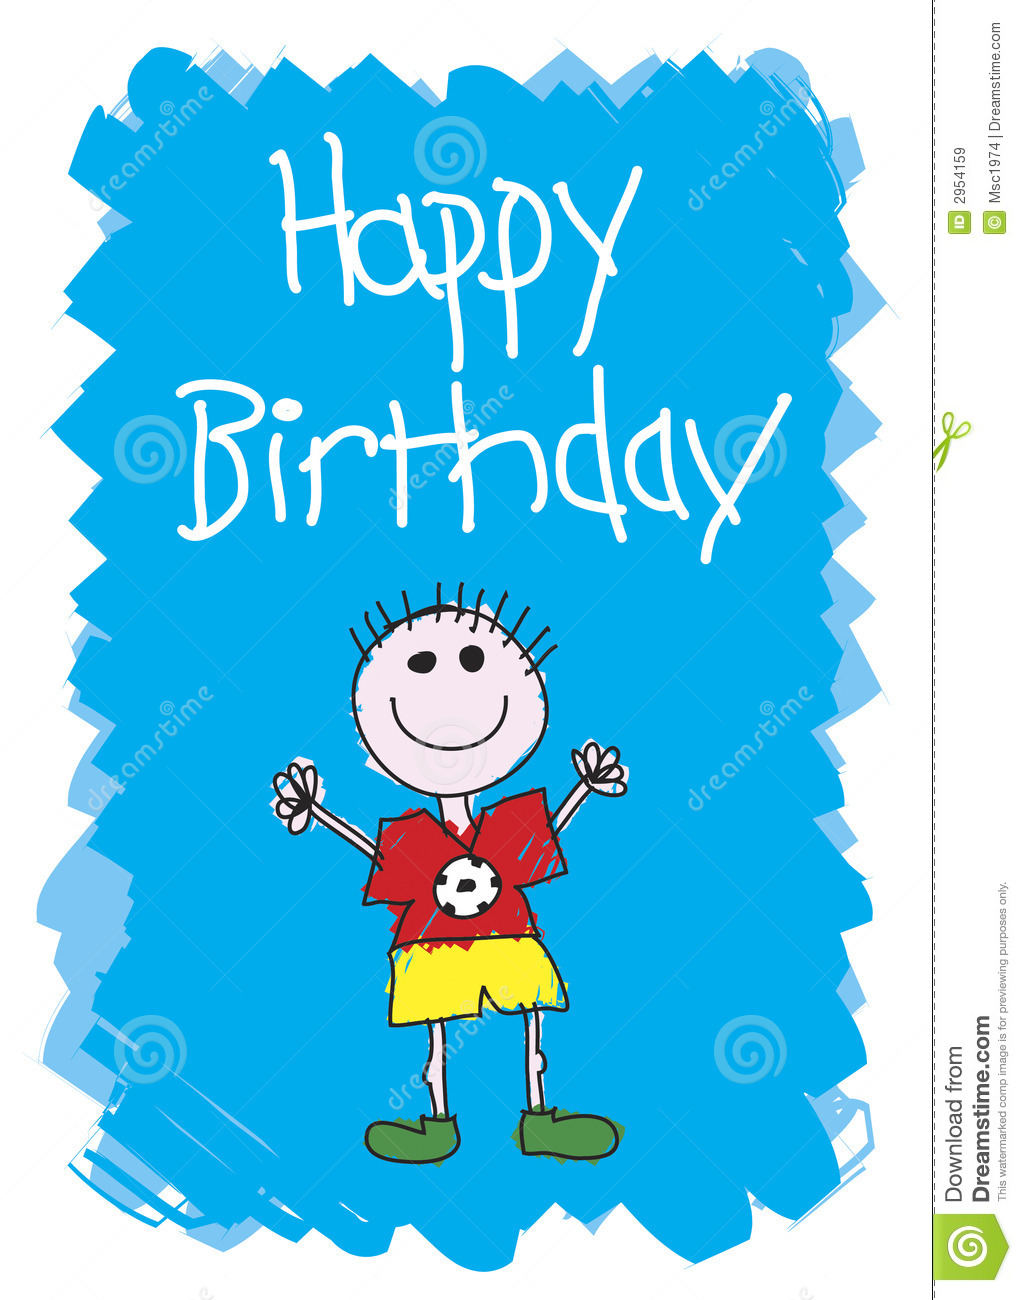 Happy Birthday - Boy Royalty Free Stock Images - Image: 2954159